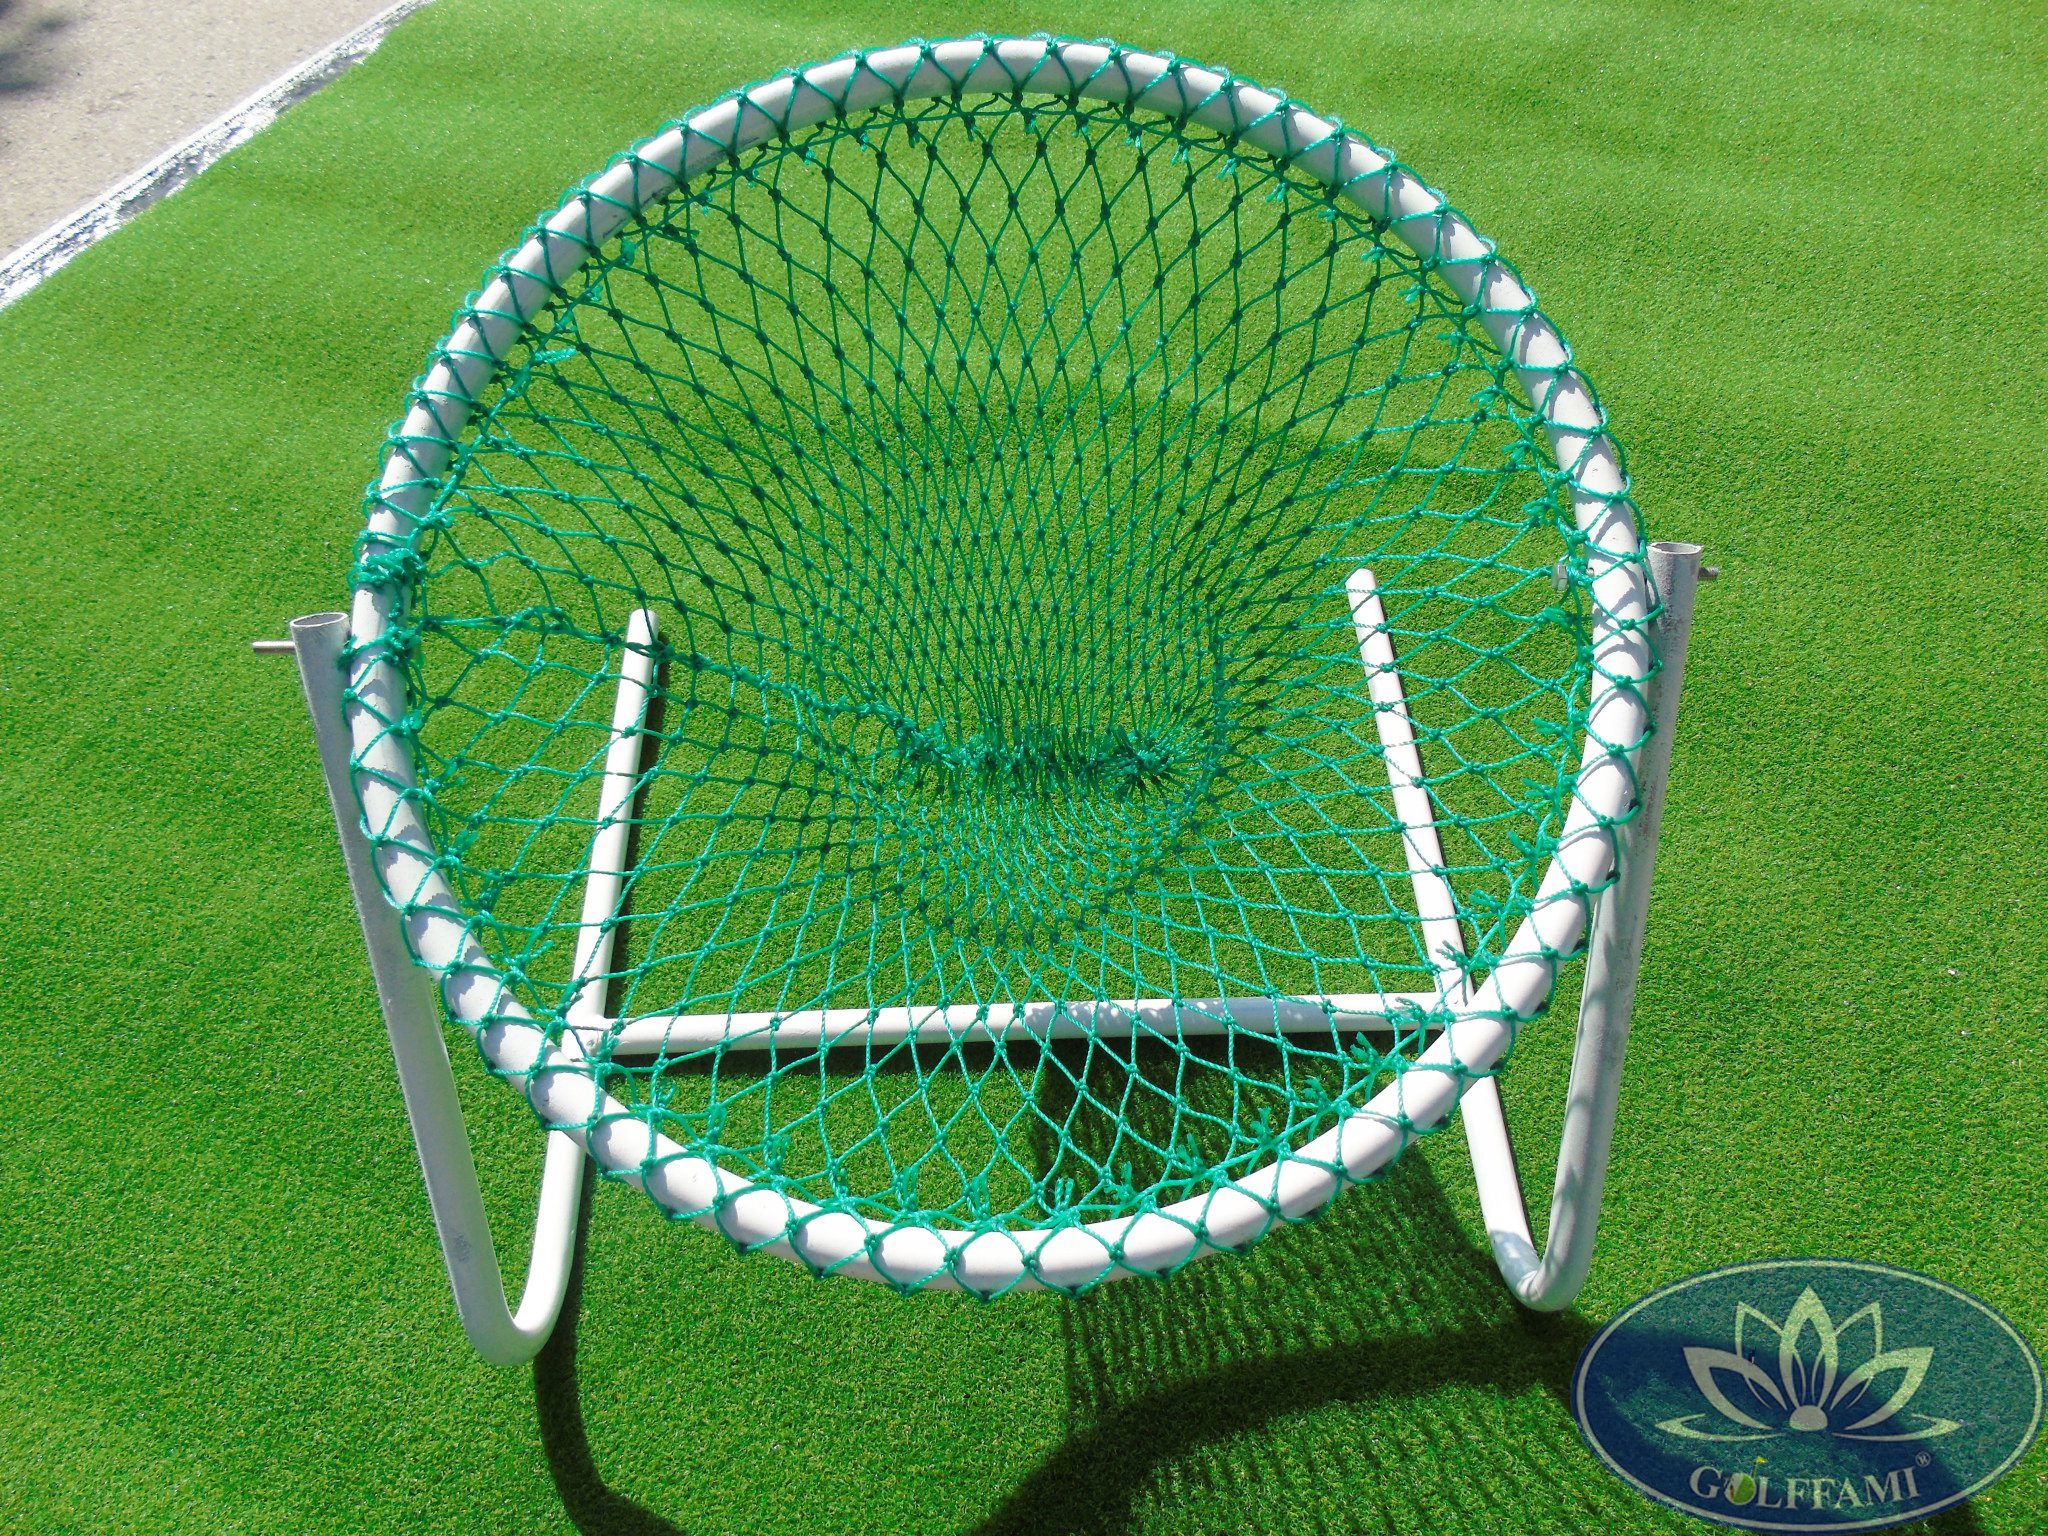 Chipping net GOMICH4